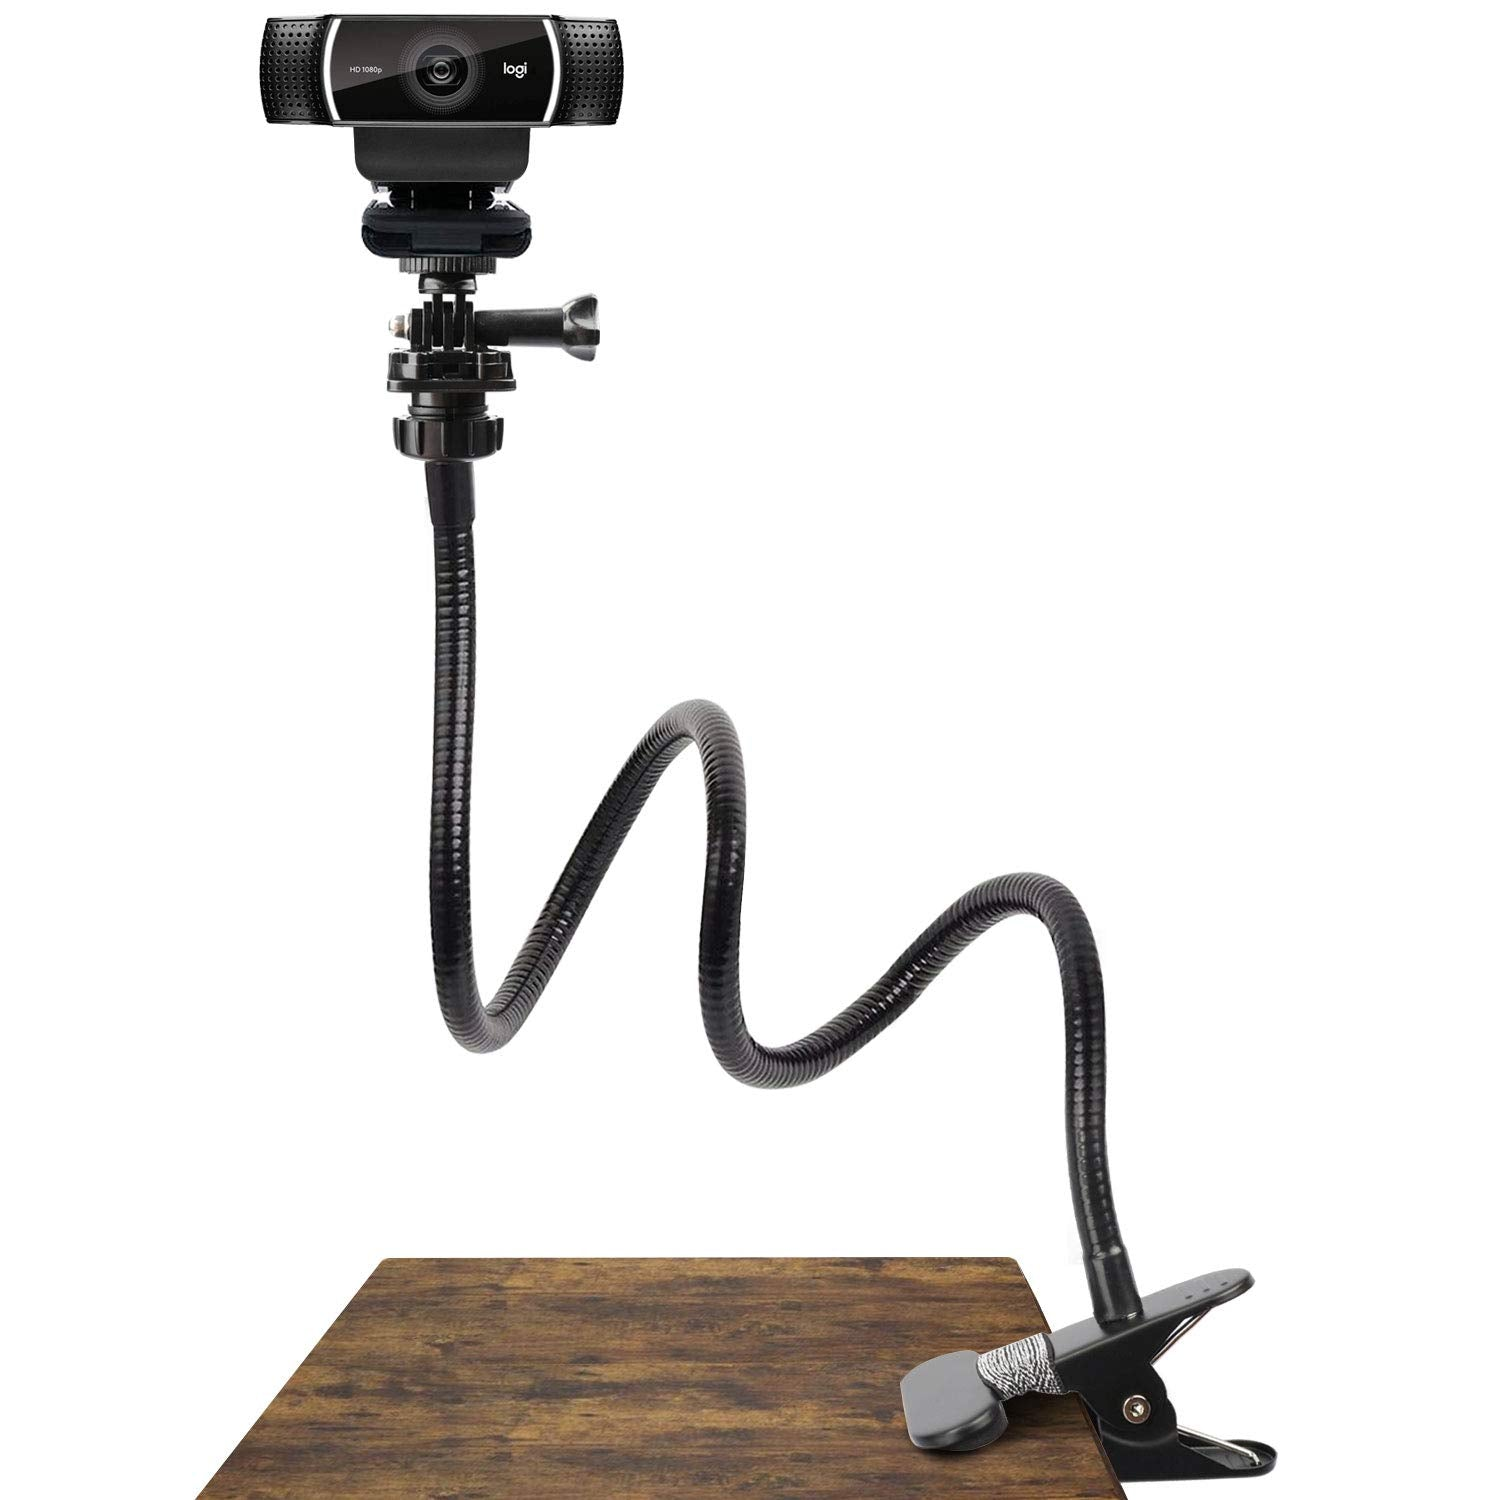 25 Inch Webcam Stand - Flexible Desk Mount Clamp Gooseneck Stand for Logitech Webcam C930e,C930,C920, C922x,C922, Brio 4K, C925e,C615 by Pipishell